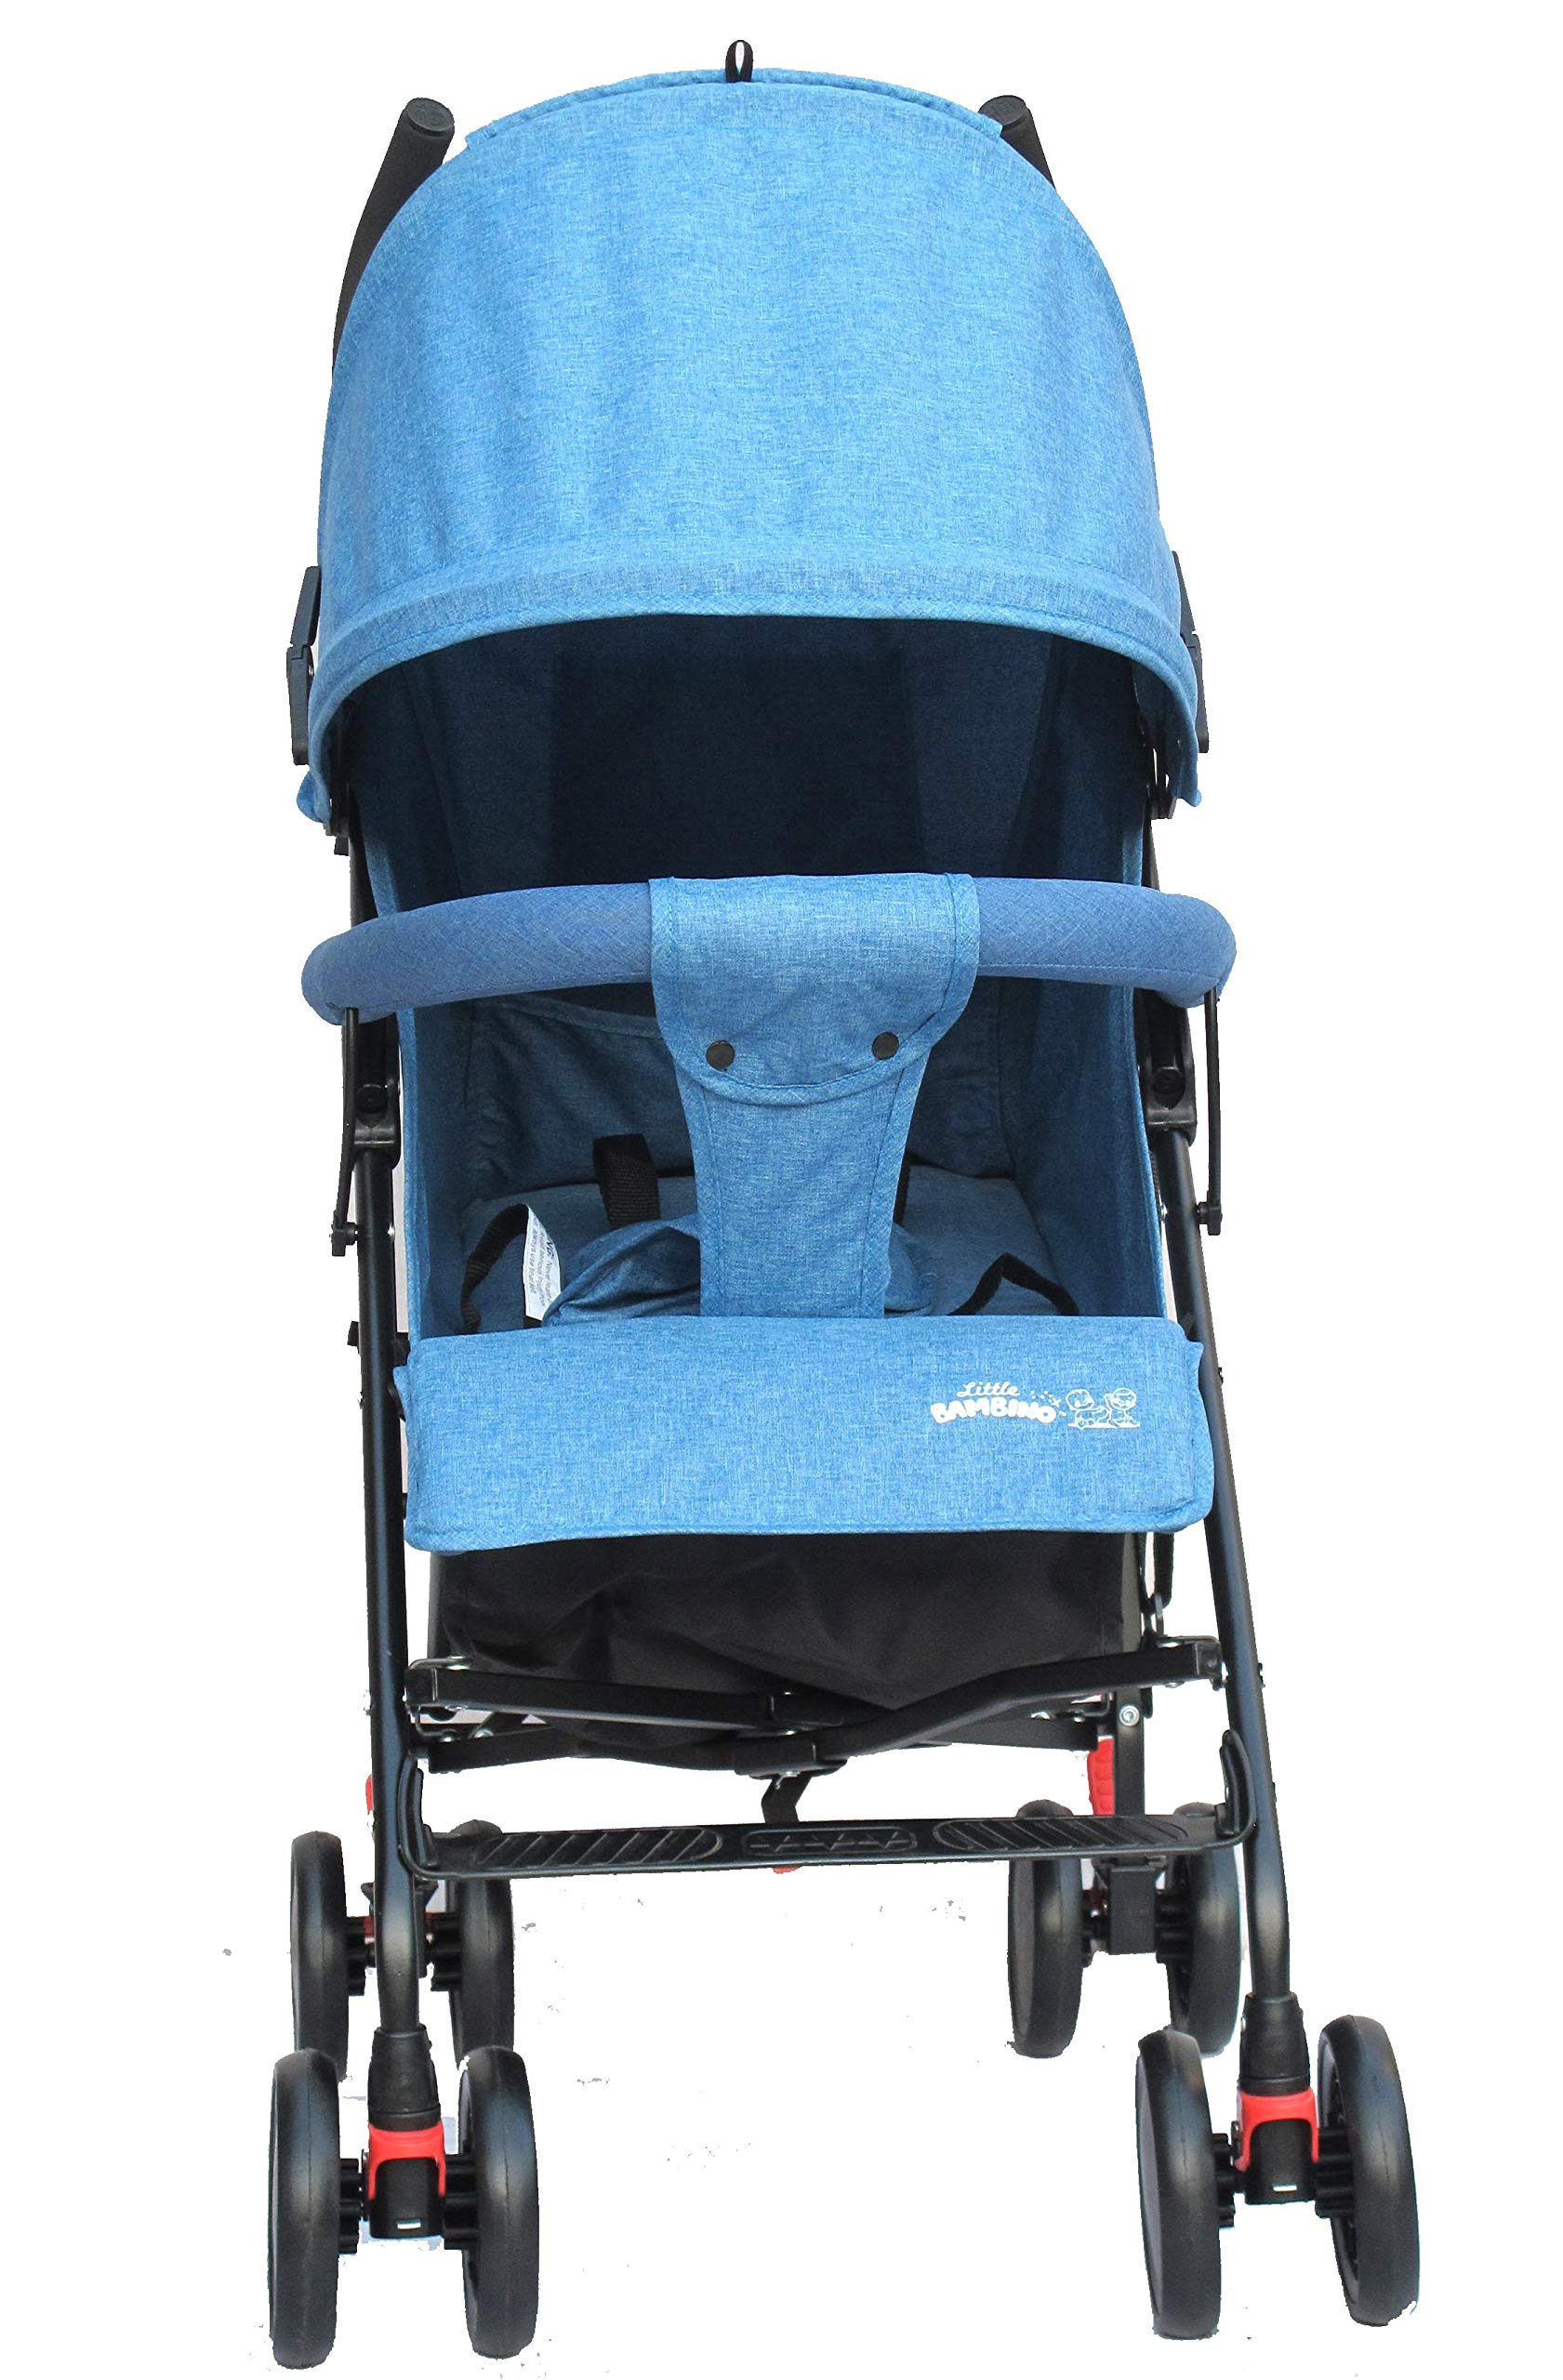 Stroller for Kids Lightweight Buggy Easy Fold Travel Stroller Buggy Foldable for Travel (Blue) Little Bambino ✨Extendable upf 50+ sun canopy and built-in sun visor ✨EASY USAGE - One-hand foldable buggy makes taking your baby for travels or walks a simple pleasure. It could stand on its own so you could take care of your baby with less things to worry about. ✨ADJUSTABLE BACKREST - Travel stroller backrest can be adjusted. Suitable for children from 0 to 36 months 2